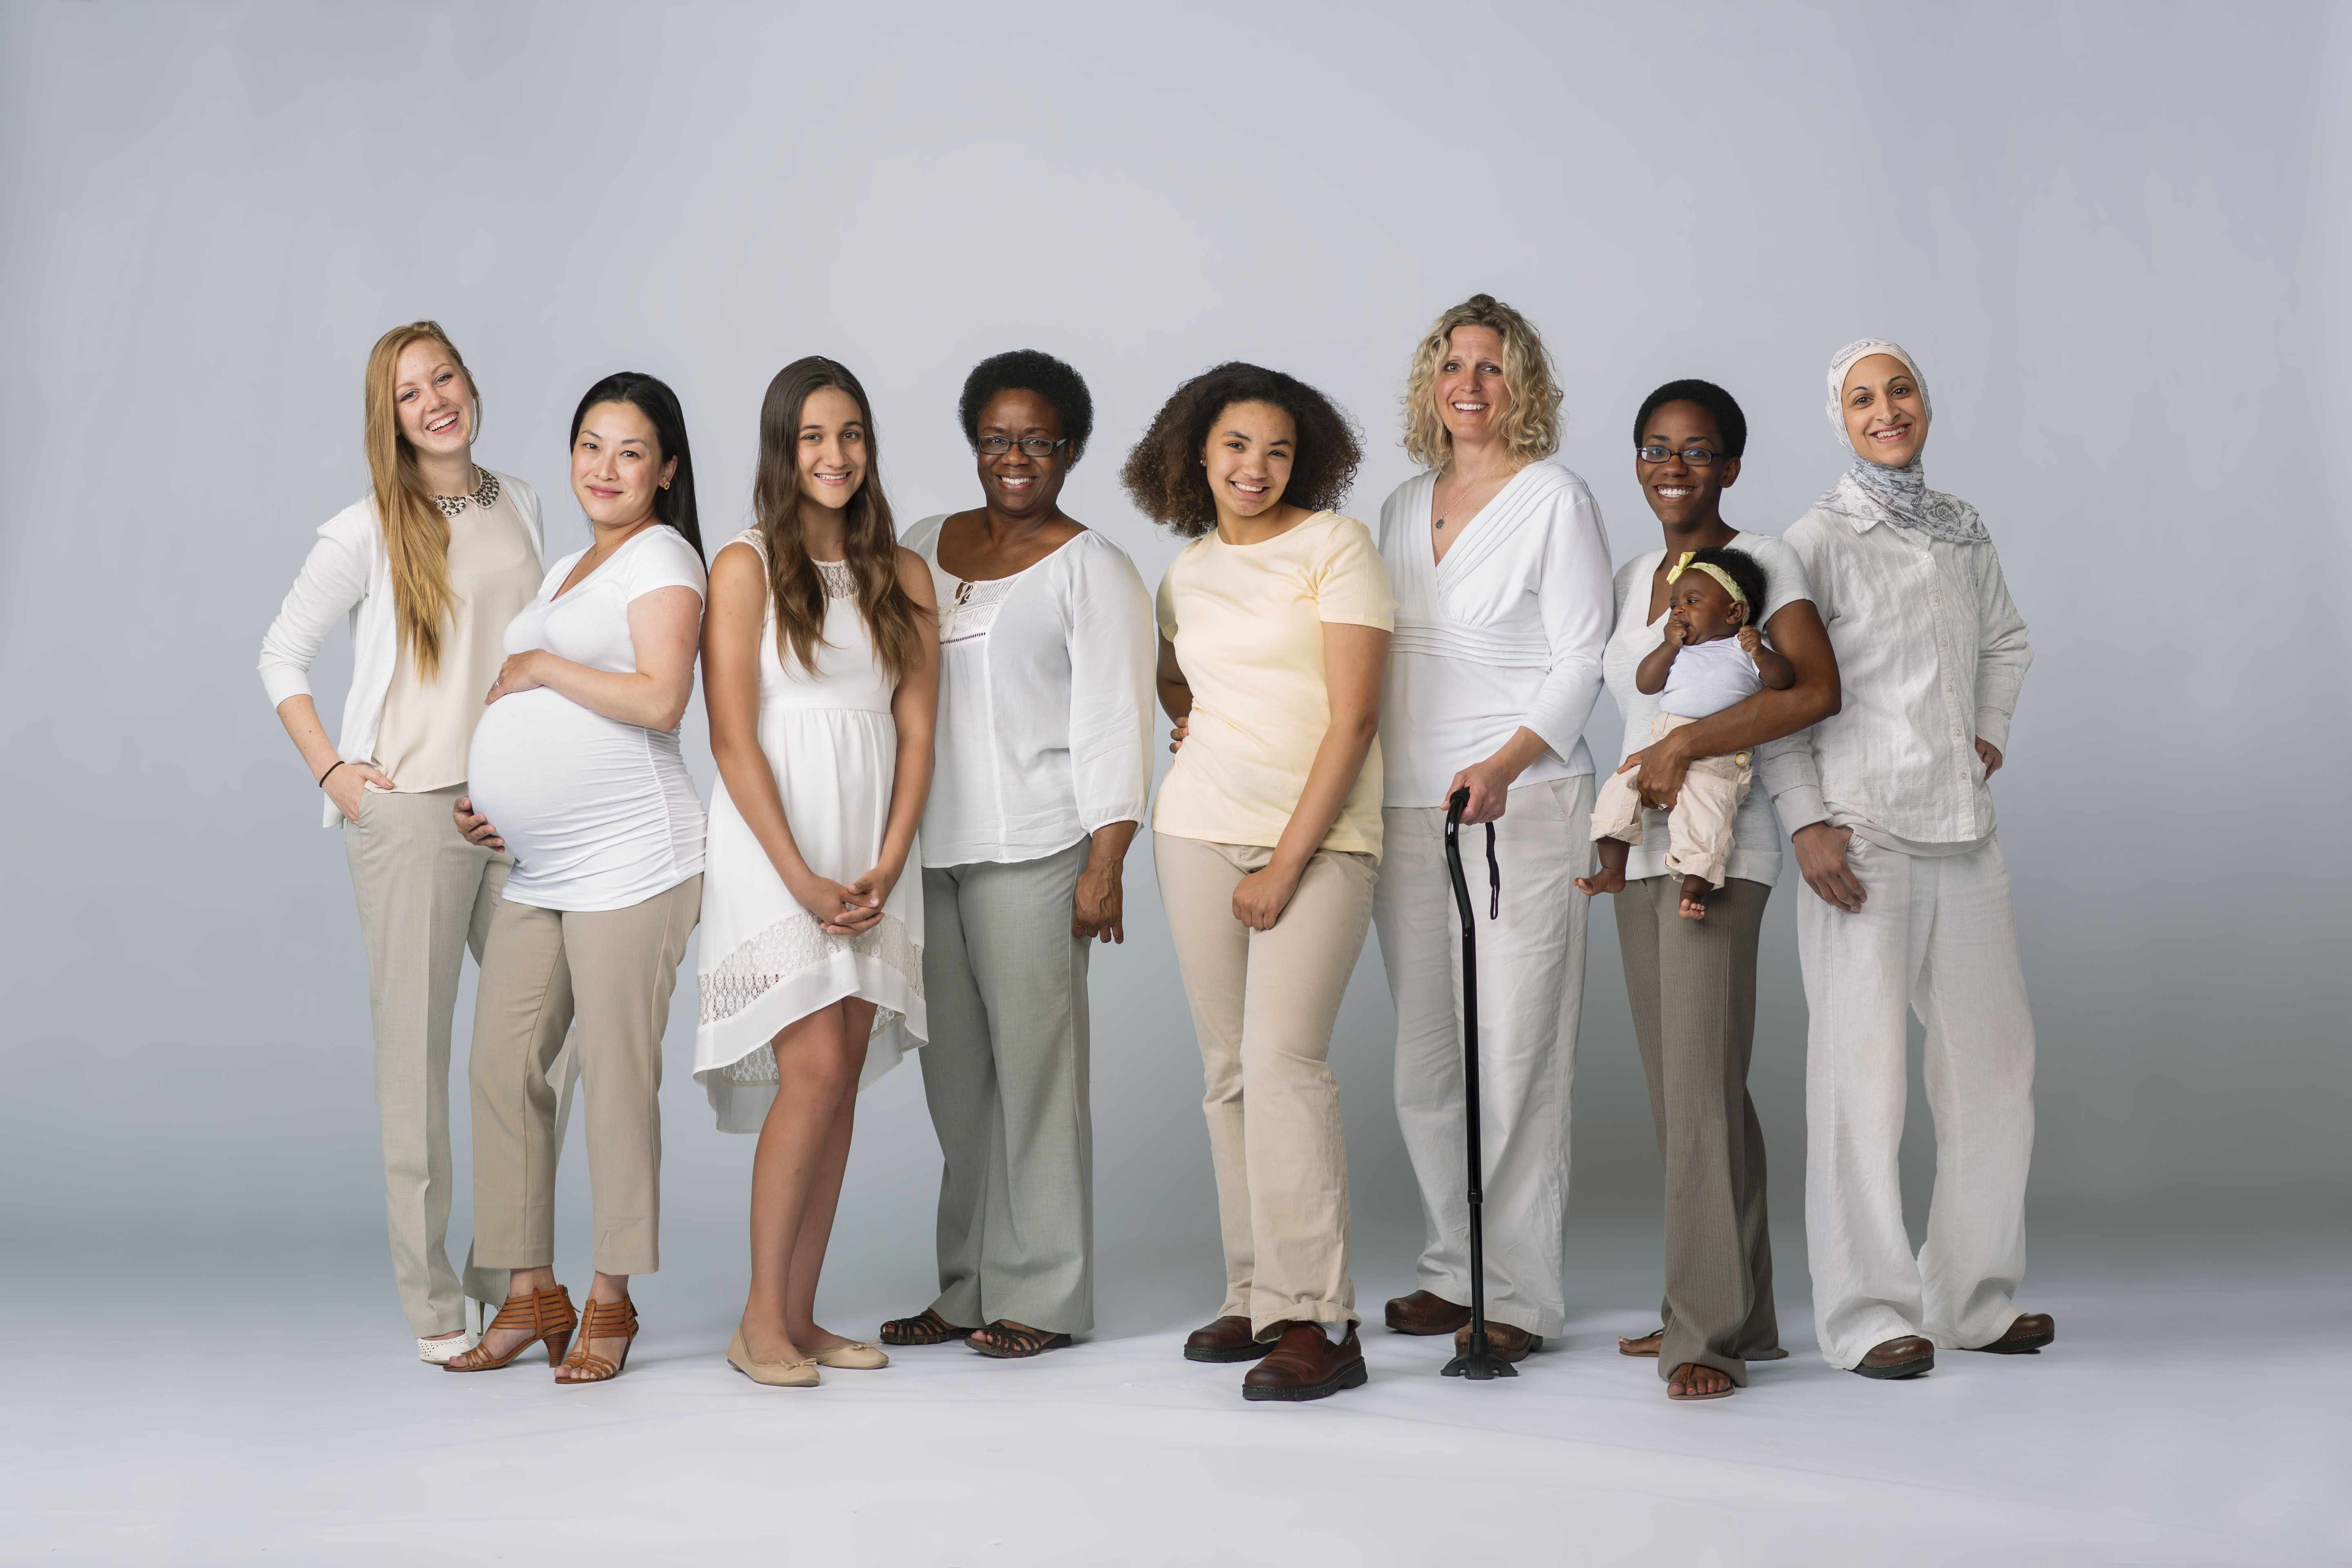 a diverse group of women representing women's health